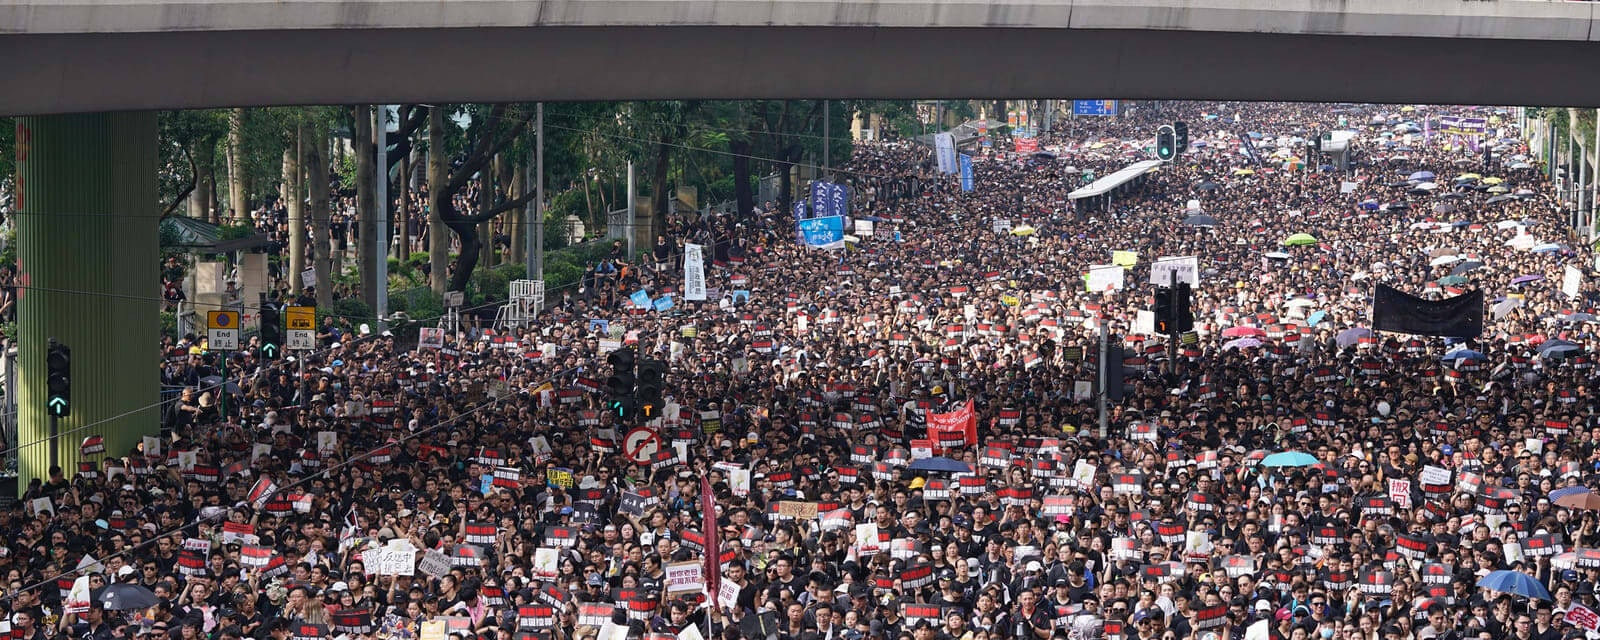 crowd-protesting-in-hong-kong